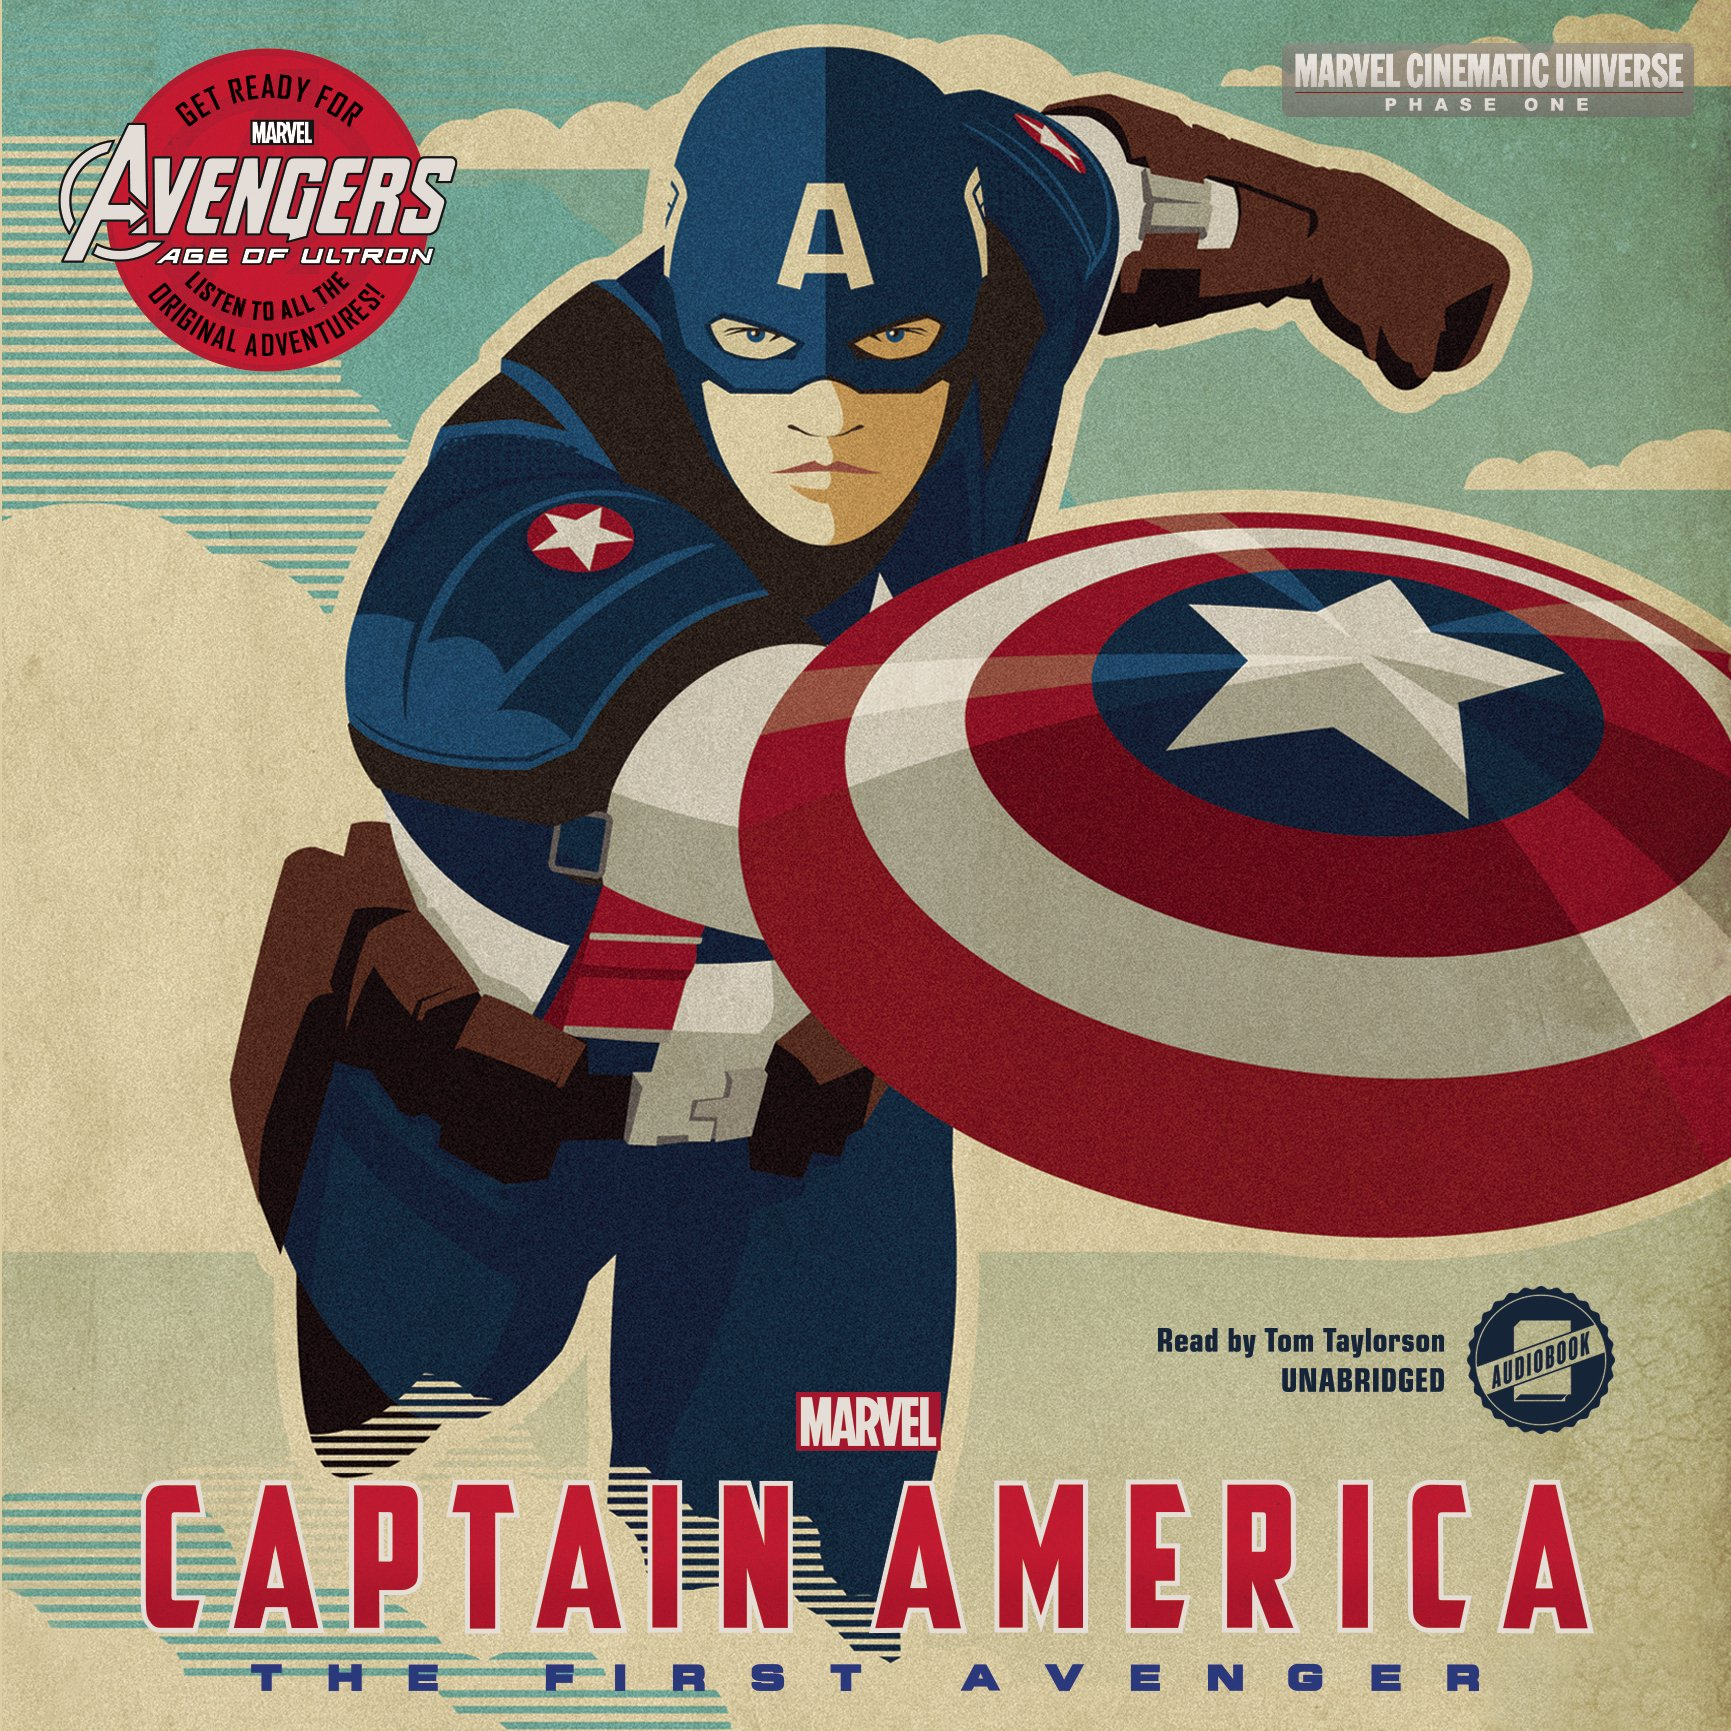 Captain America: The First Avenger: Library Edition (Marvel's Avengers Phase One) PDF